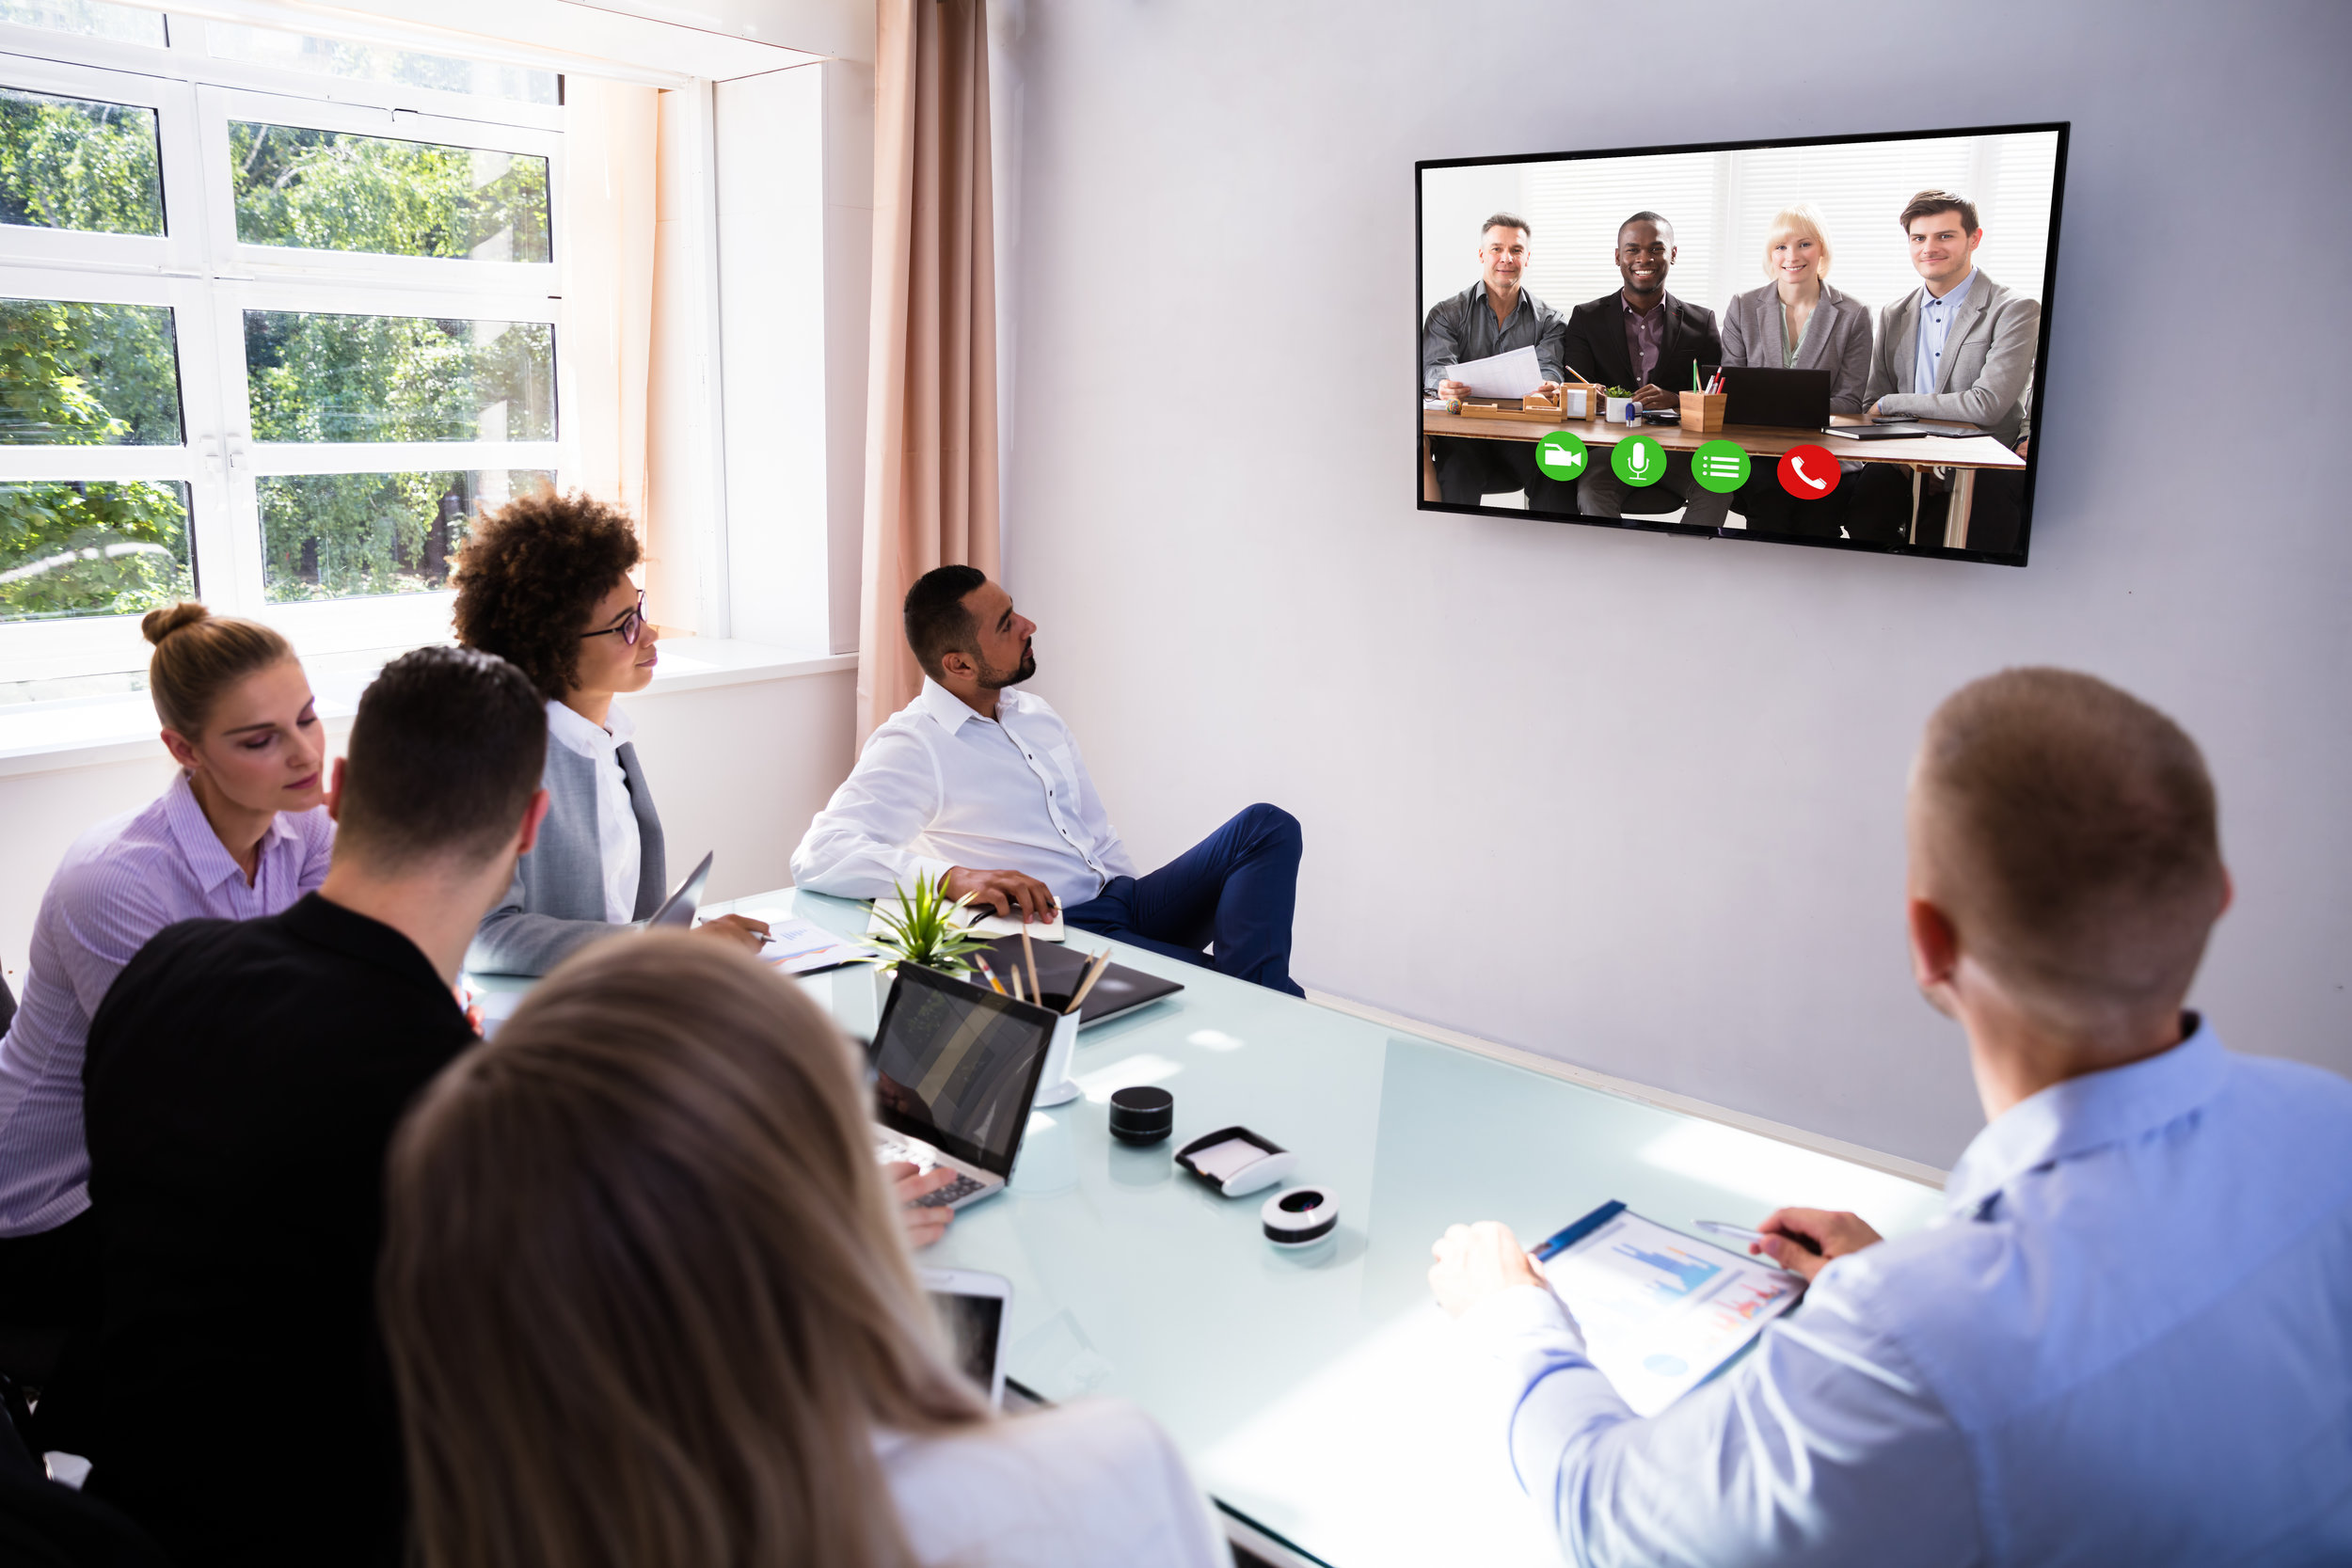 Video CONFERENCING - Smart Installations has a Video Conferencing solution to suit every size of business. With the correct network infrastructure in place you will be able to achieve up to 4K resolutions with full surround sound audio.